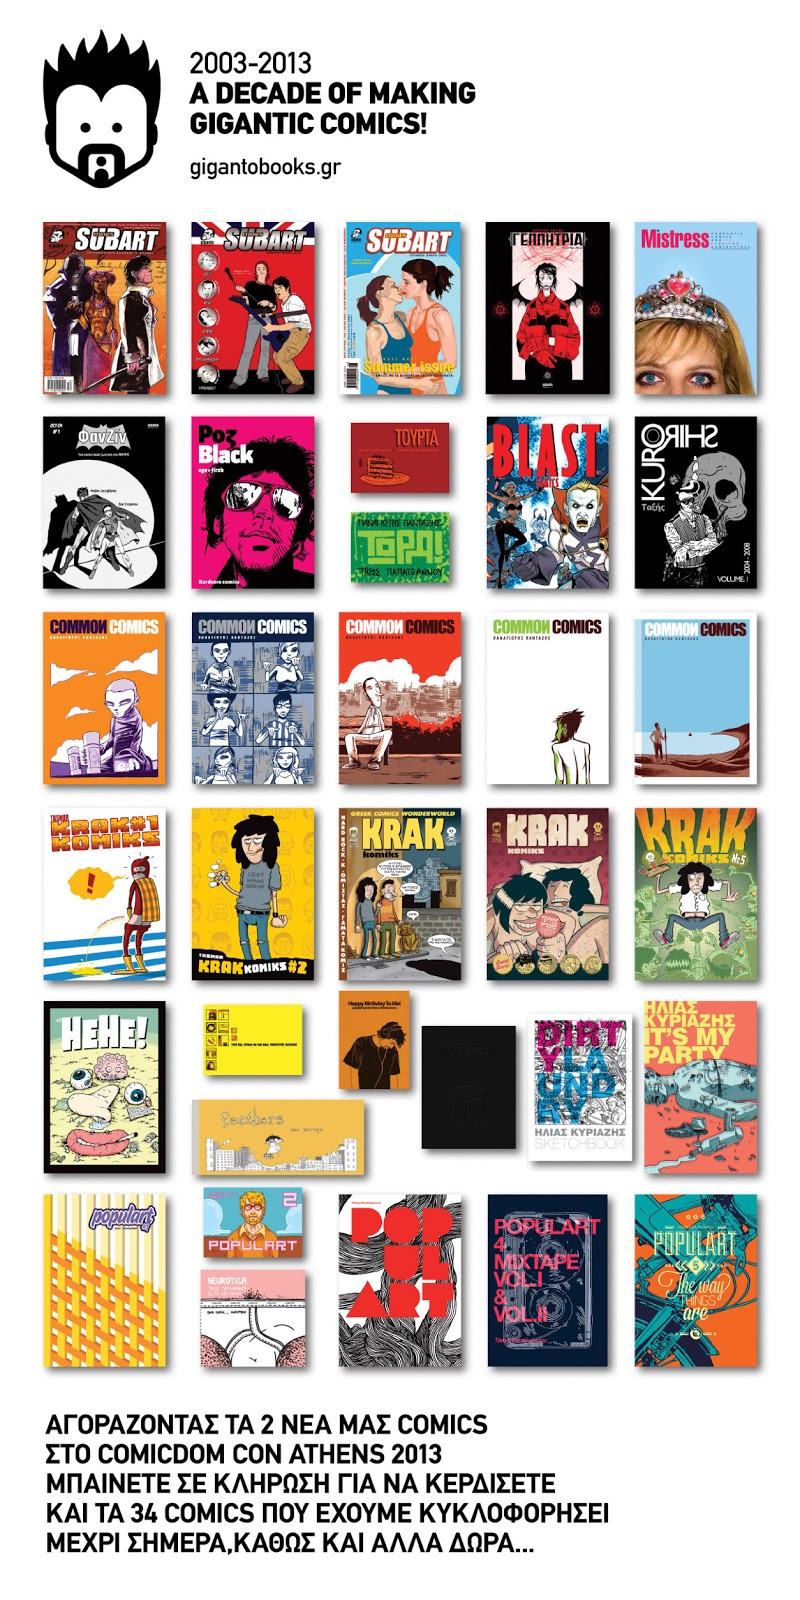 giganto_10years_all-34-comics_contest_low_1300x2600px